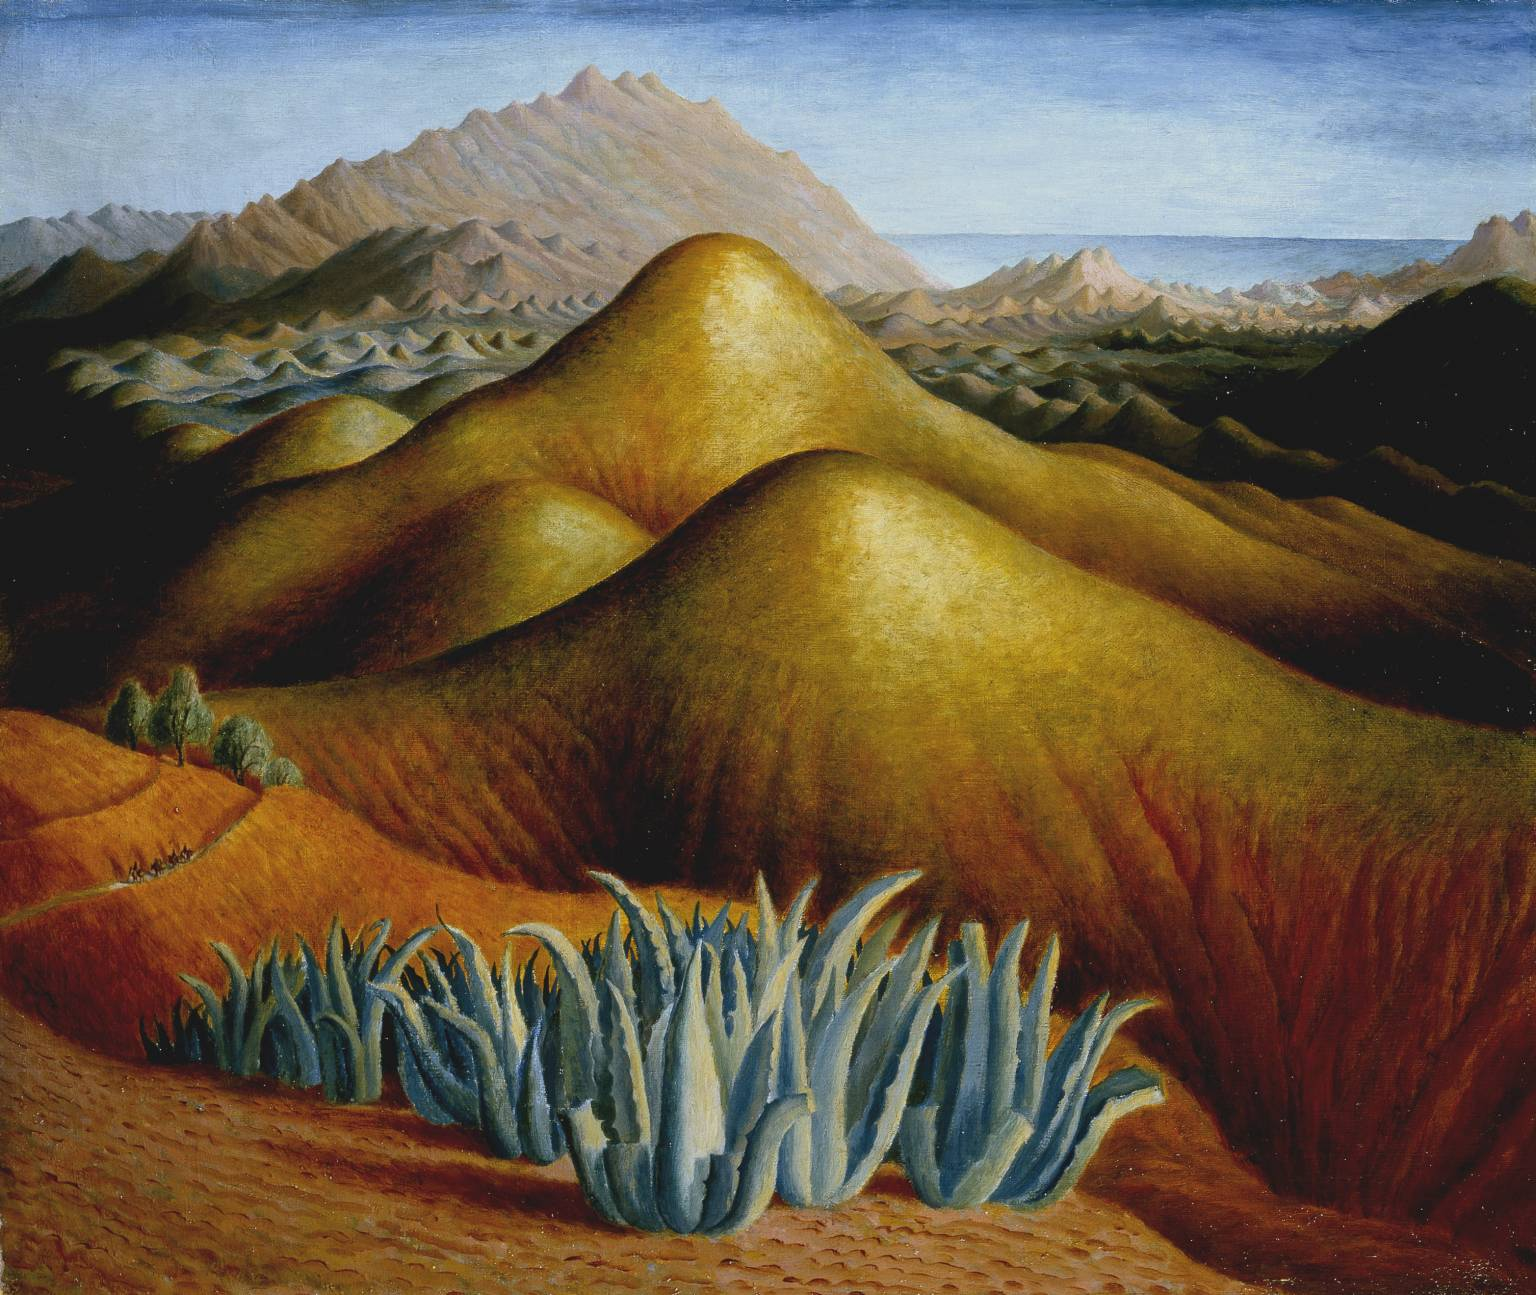 Spanish Landscape with Mountains, by Carrington, c. 1924